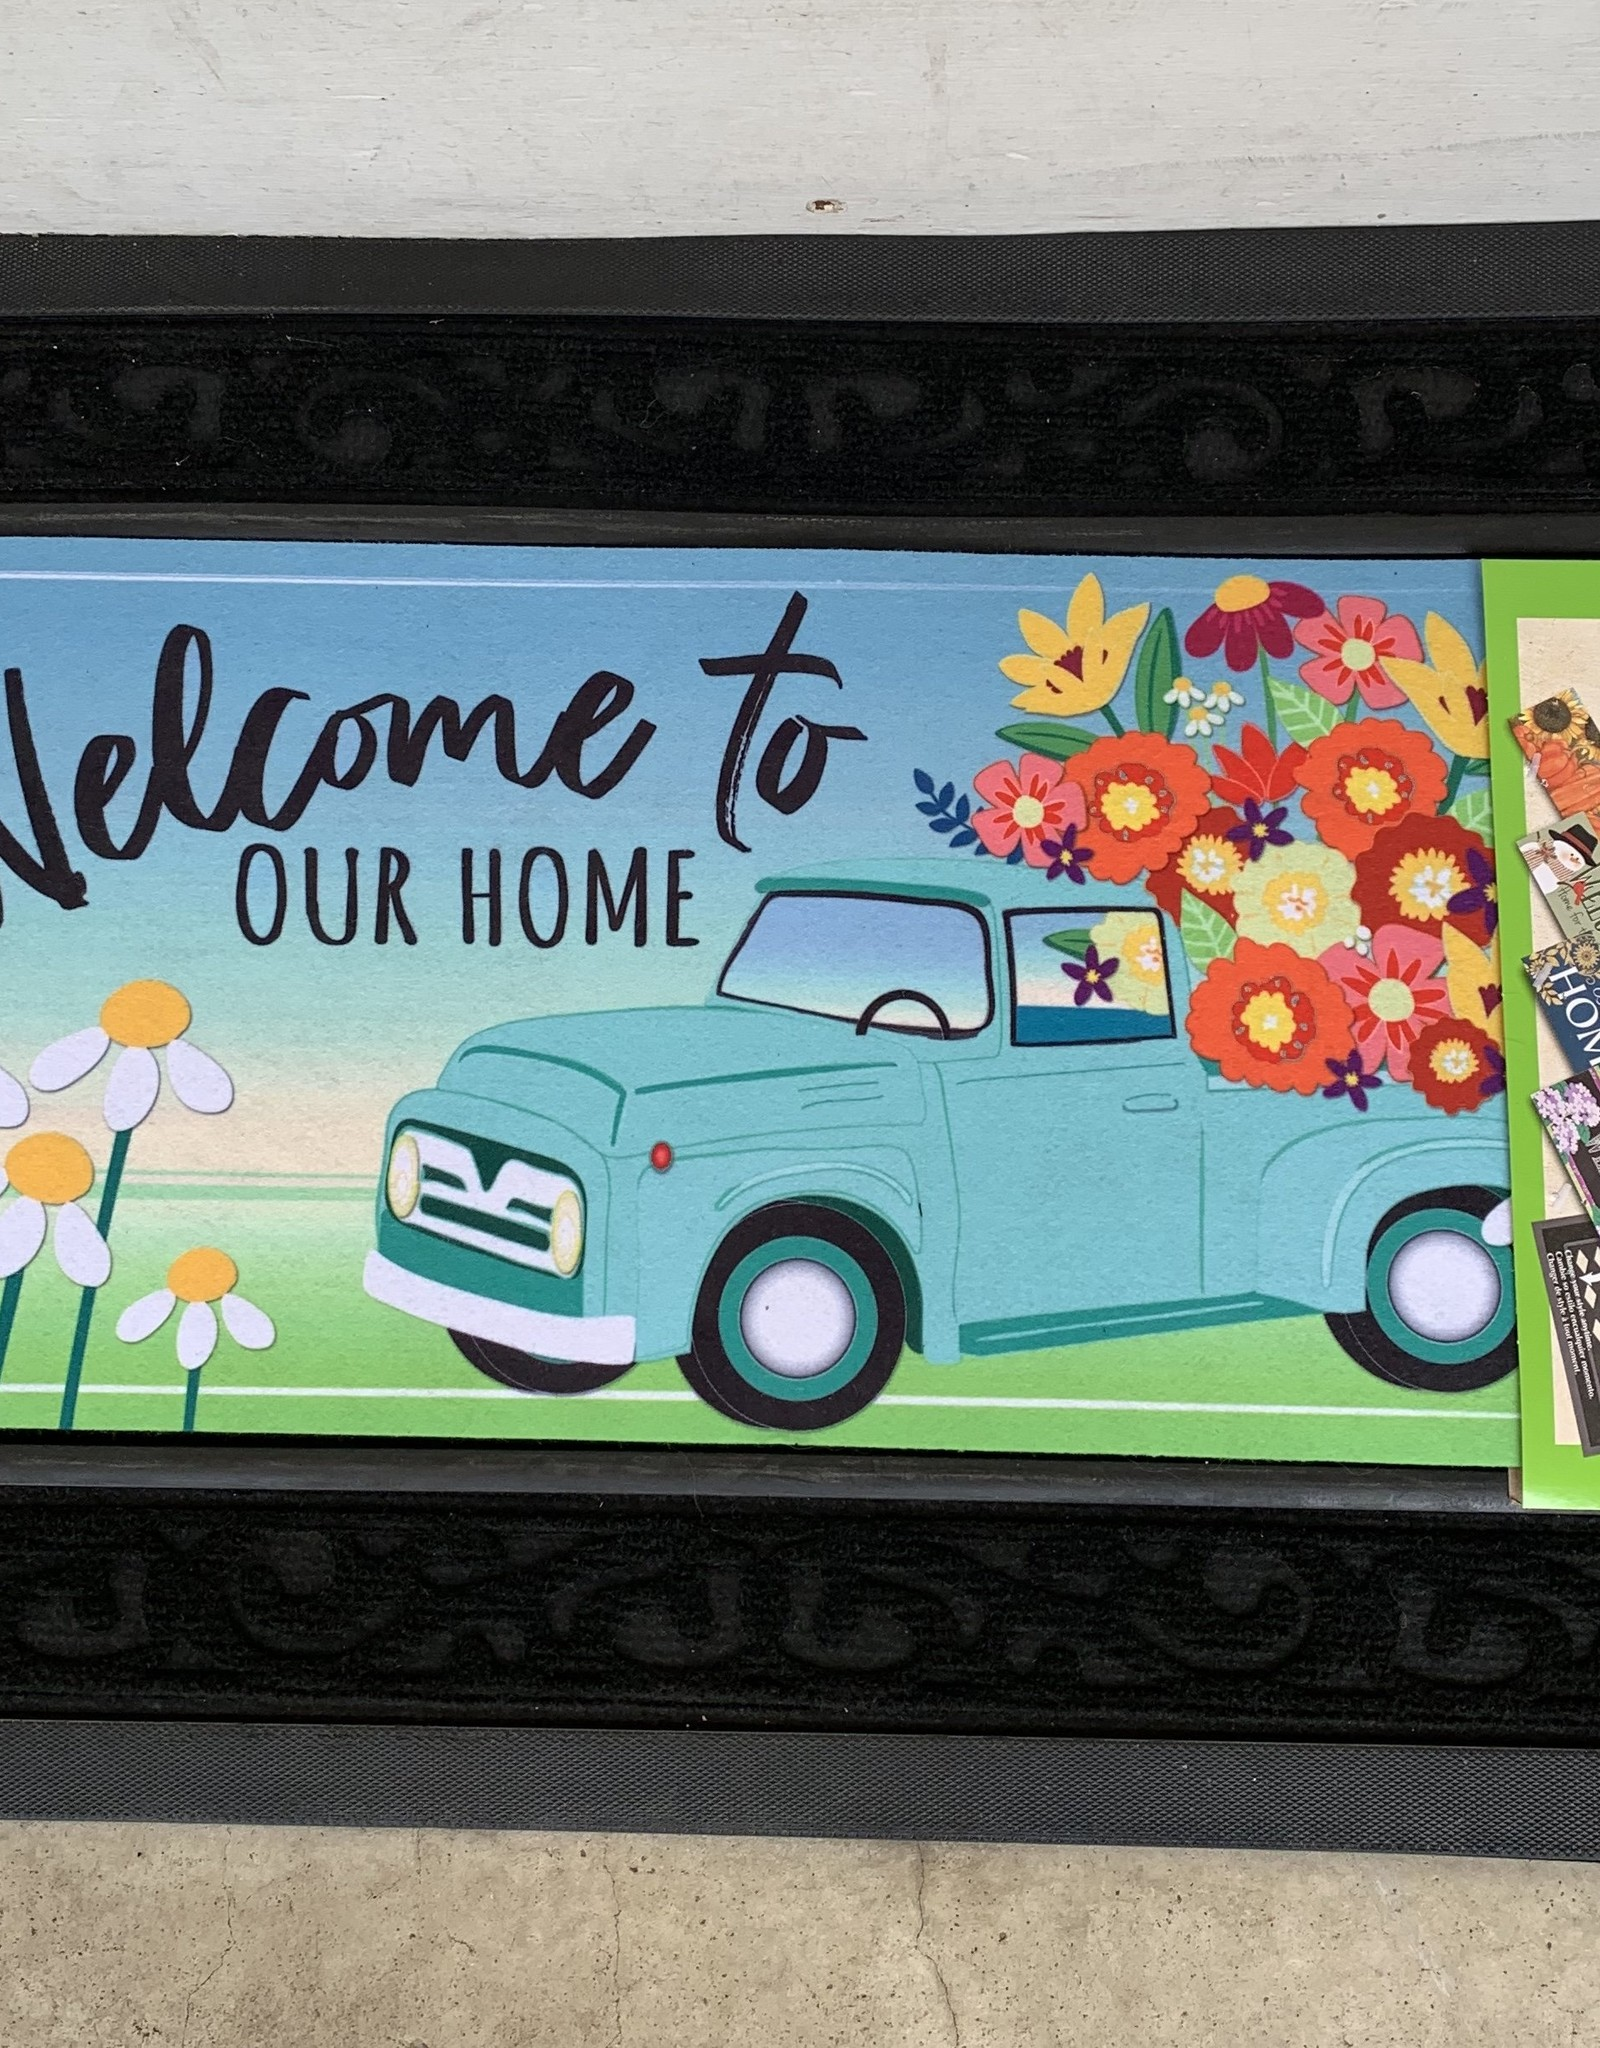 EVERGREEN ENTERPRISES, INC. WELCOME TO OUR HOME MINT FLOWER TRUCK -  DOOR MAT INSERT